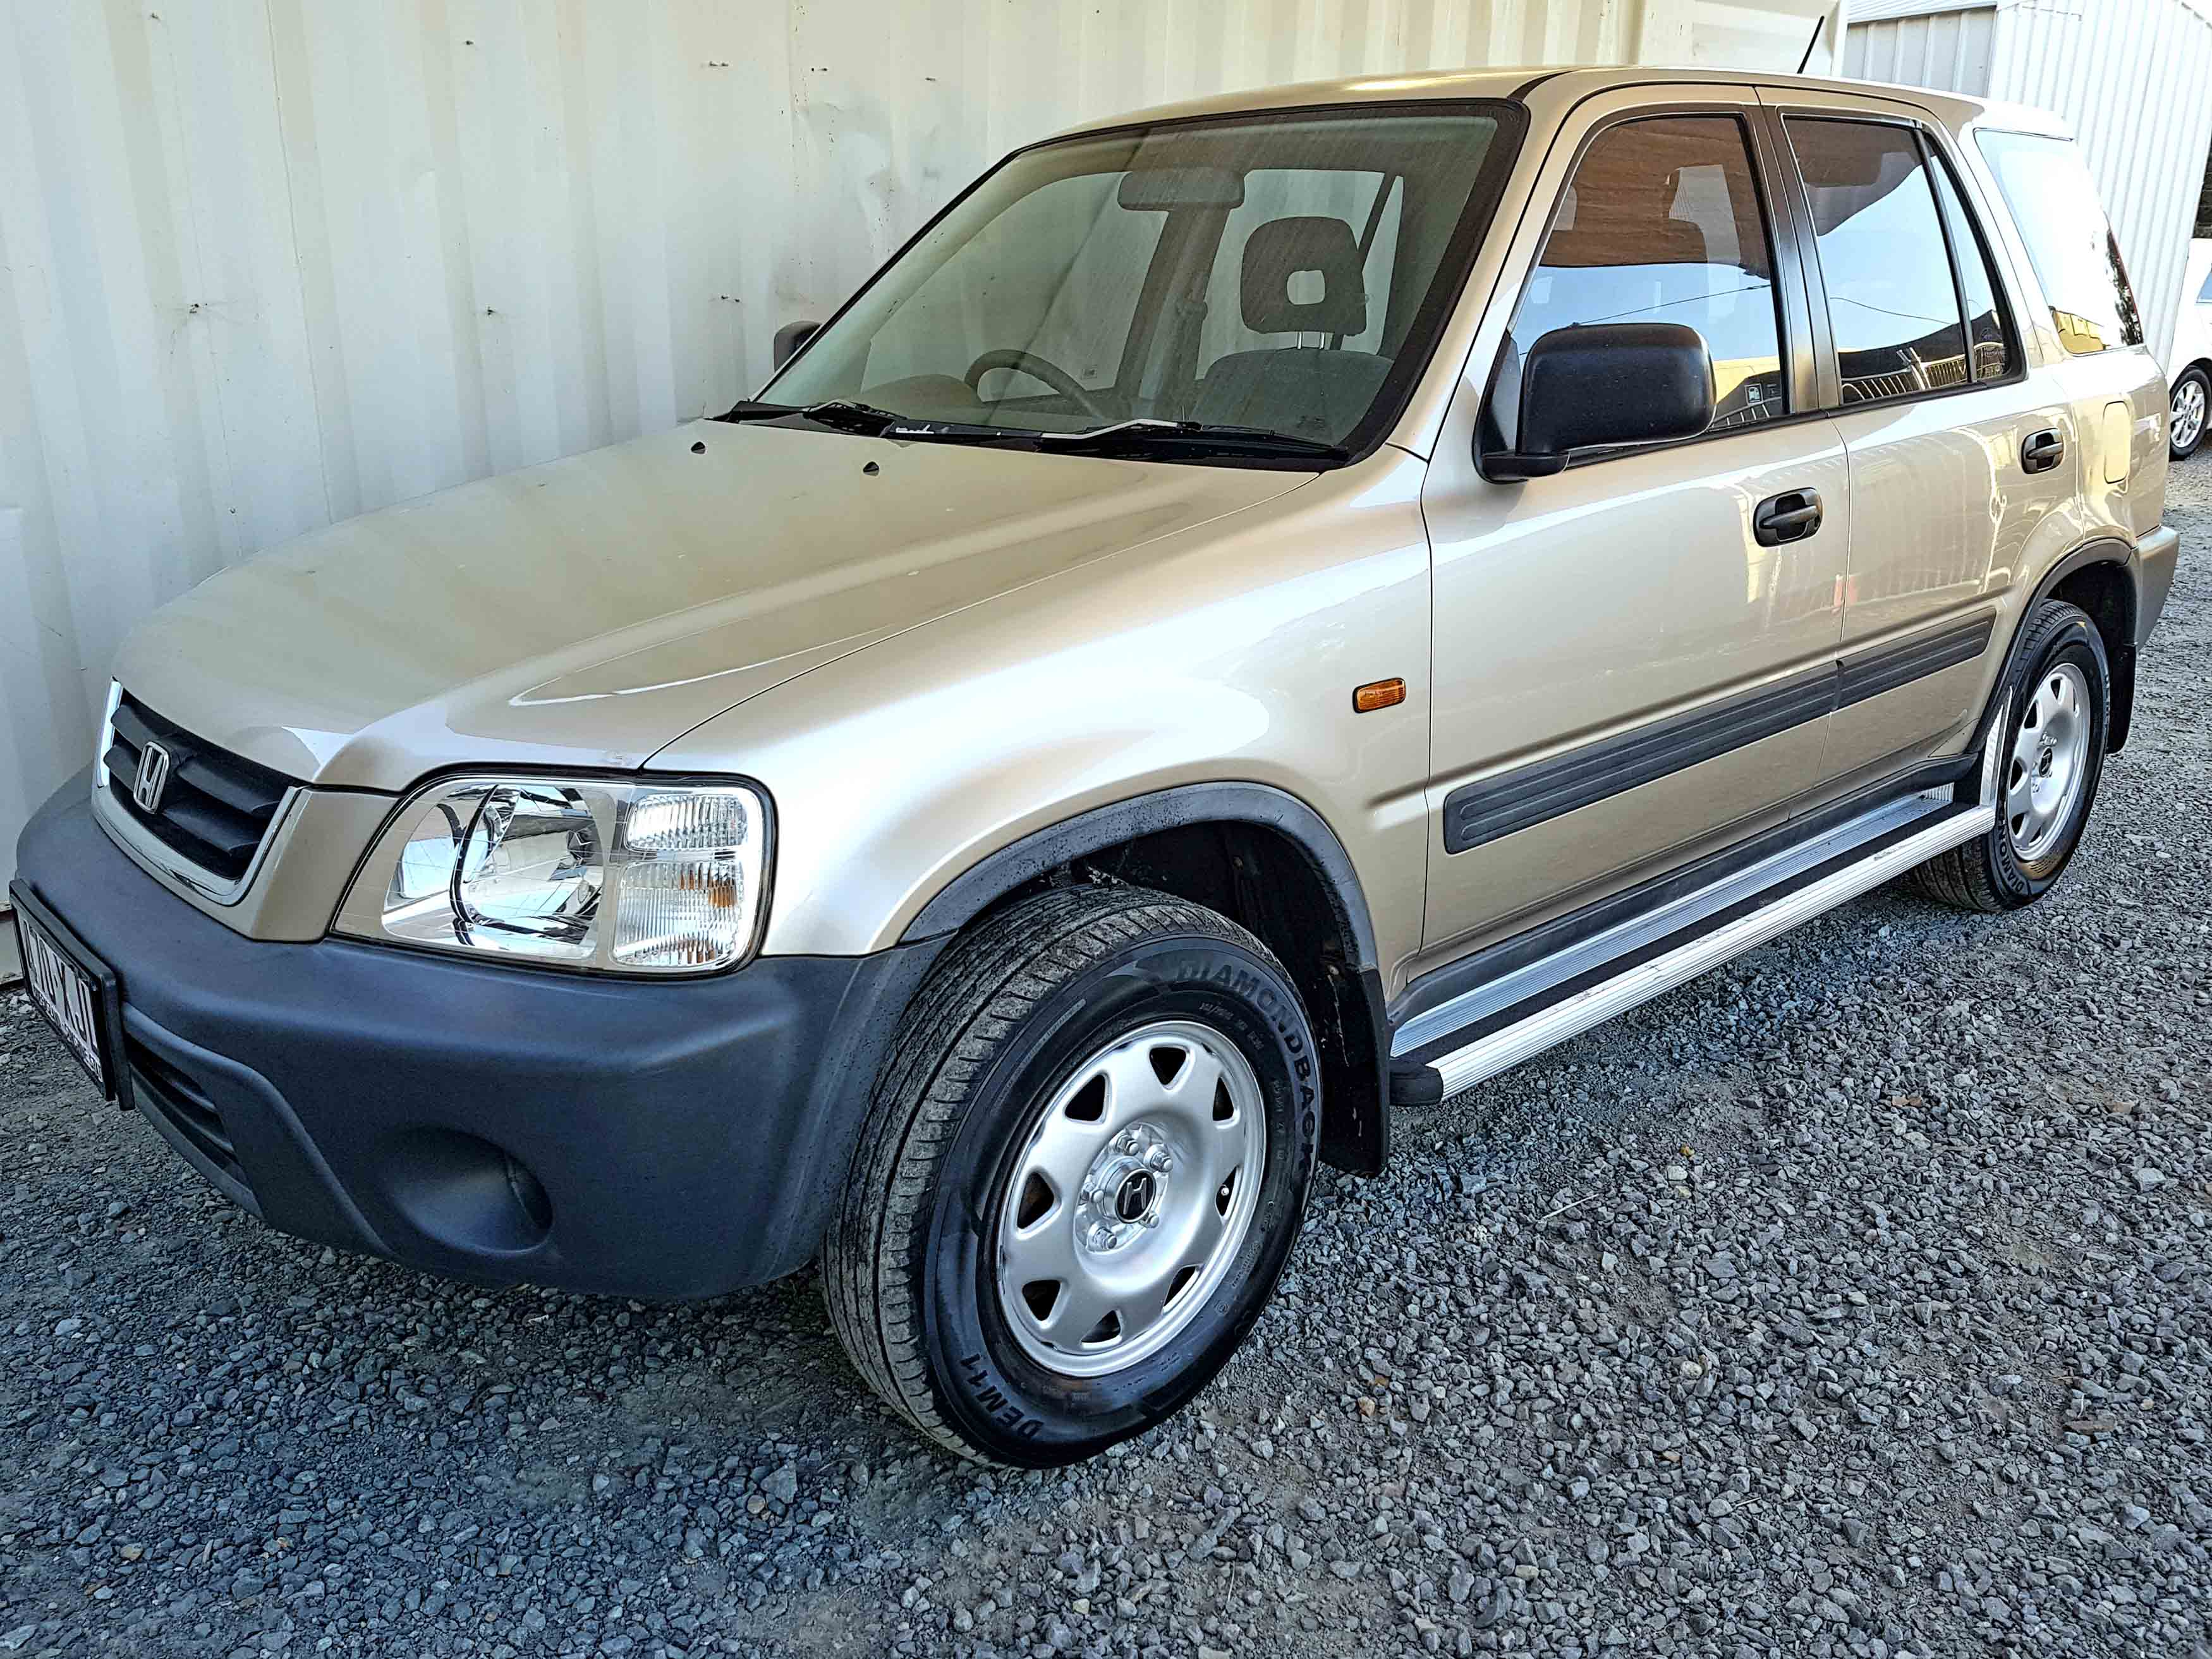 Automatic 4x4 SUV Honda CR-V Sport 2000 Gold - Used ...